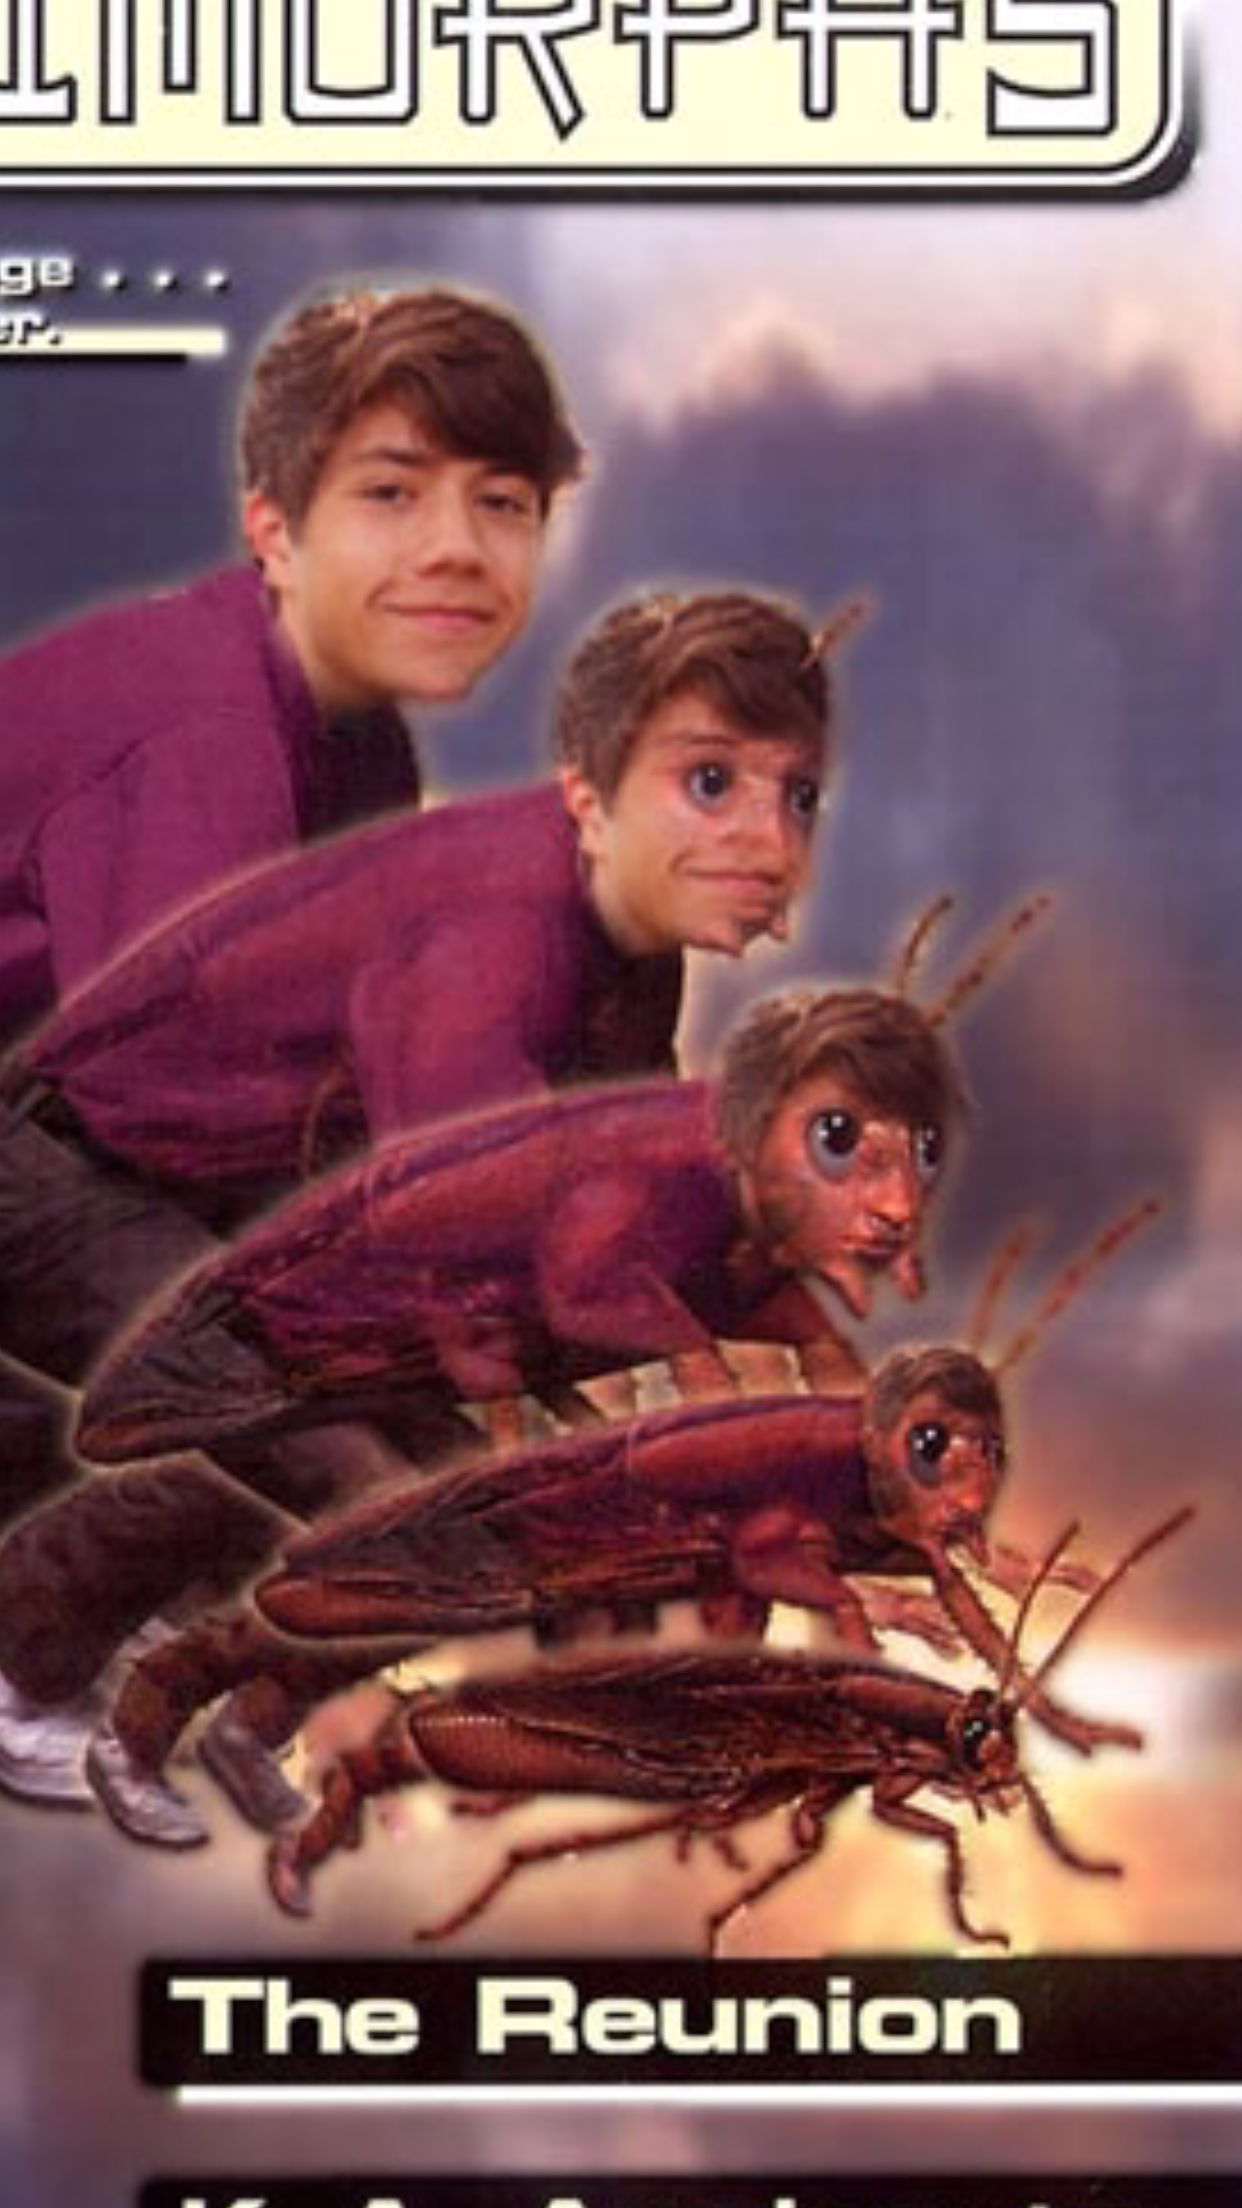 My personal favorite. This is my friend Ben turning into a cockroach.